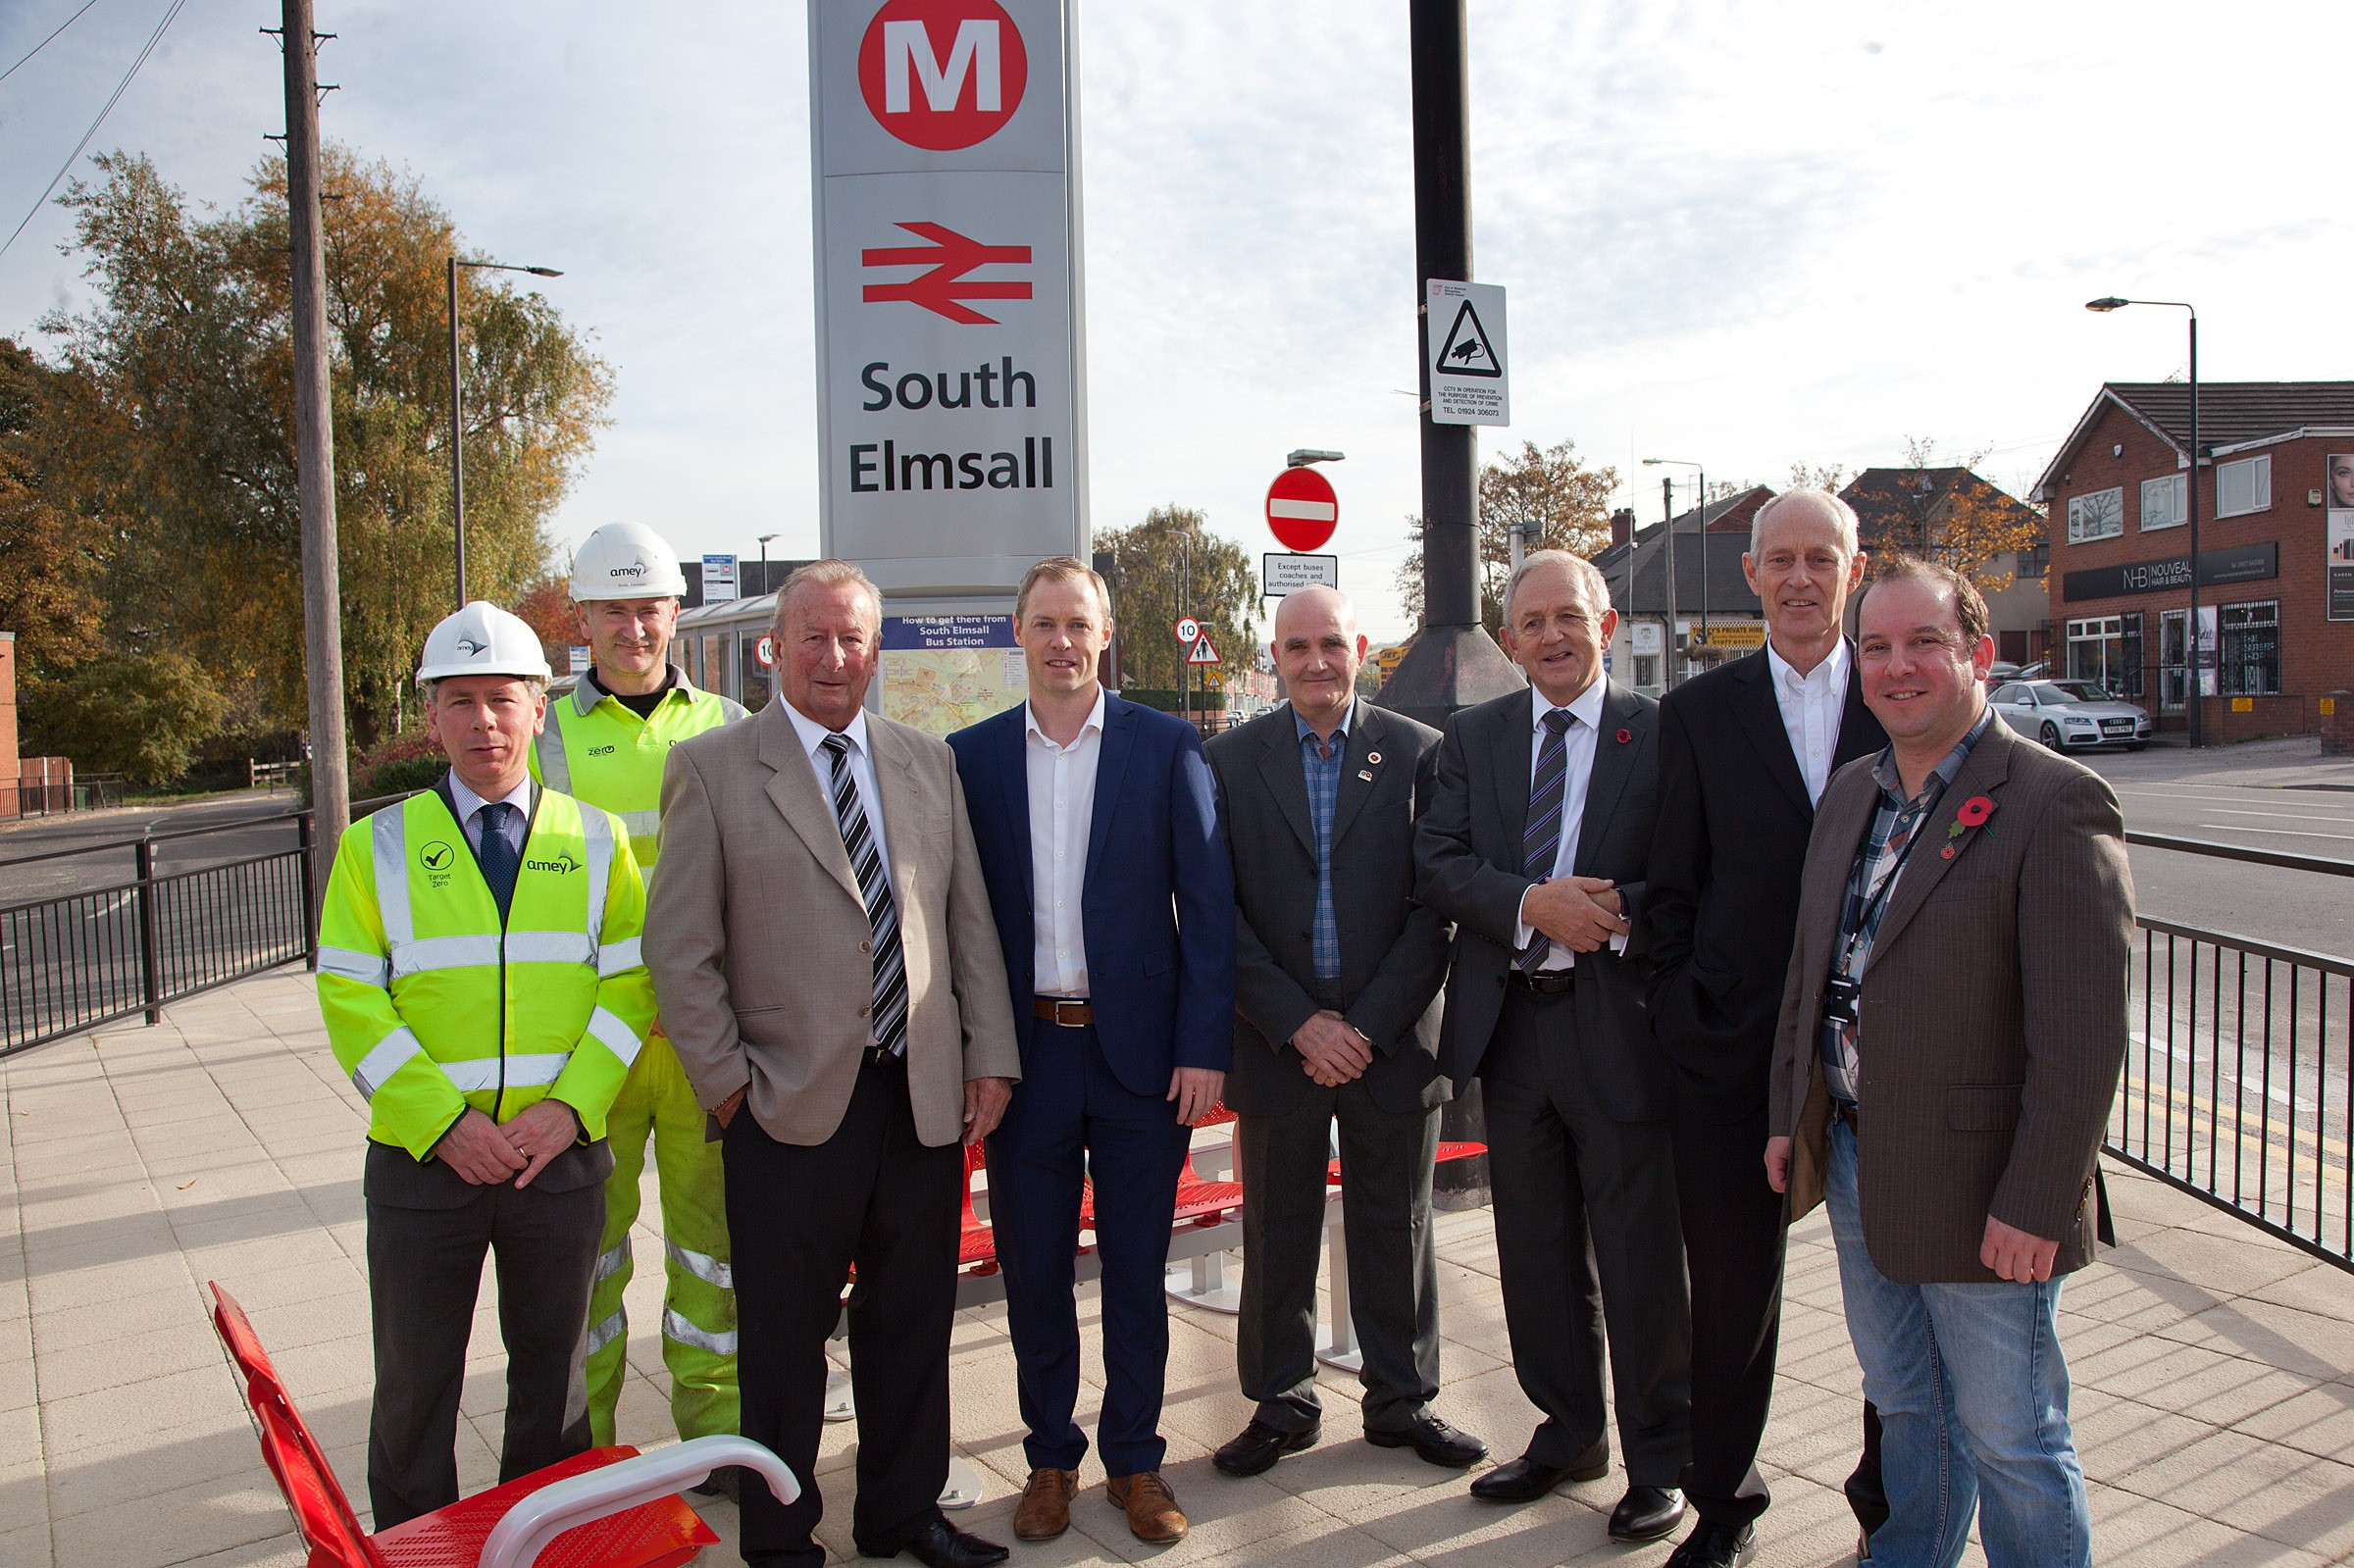 Image shows L to R: Stuart Nichols, Andy Campbell (Amey);  Cllr Wilf Benson, Paul Turton (SCP) Cllr Glyn Lloyd, Cllr Keith Wakefield, Cllr Peter Box and Cllr Matthew Morley.